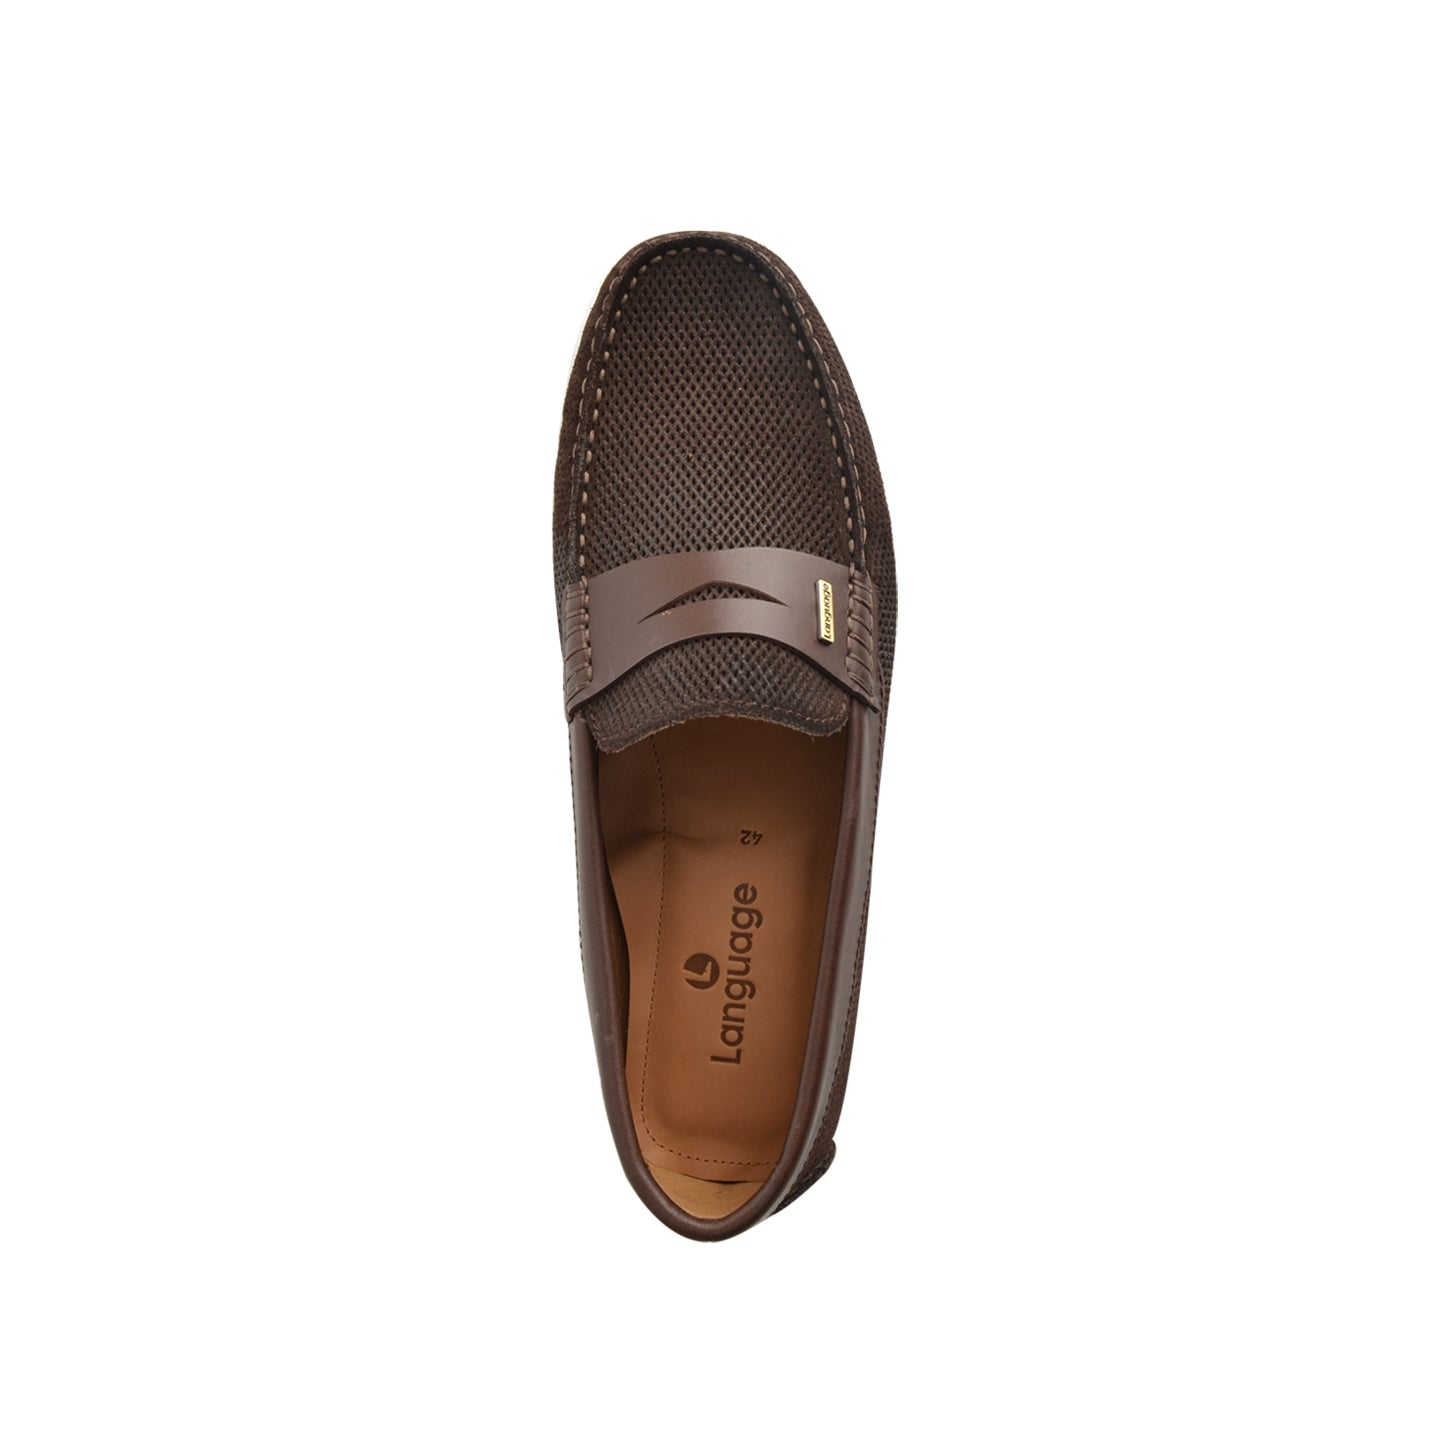 LM920 - Language Gaya Men's Dk Brown  Casuals Moccasin